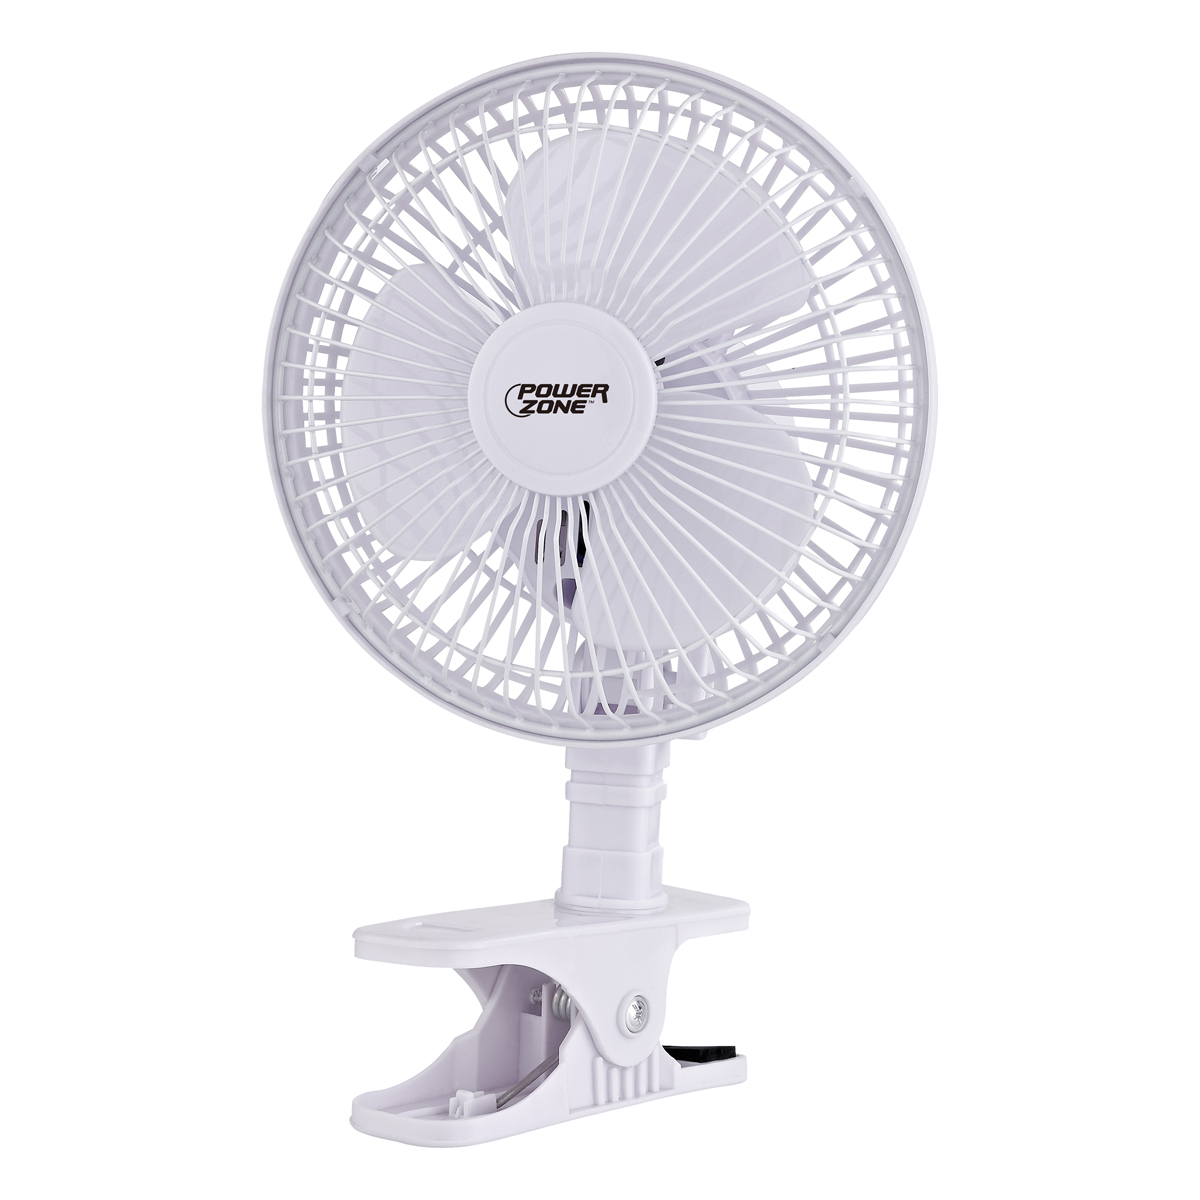 Picture of PowerZone F-0645 Clip-on Oscillating Portable Fan, 120 VAC, 6 in Dia Blade, 3-Blade, 2-Speed, 2 Speed, White